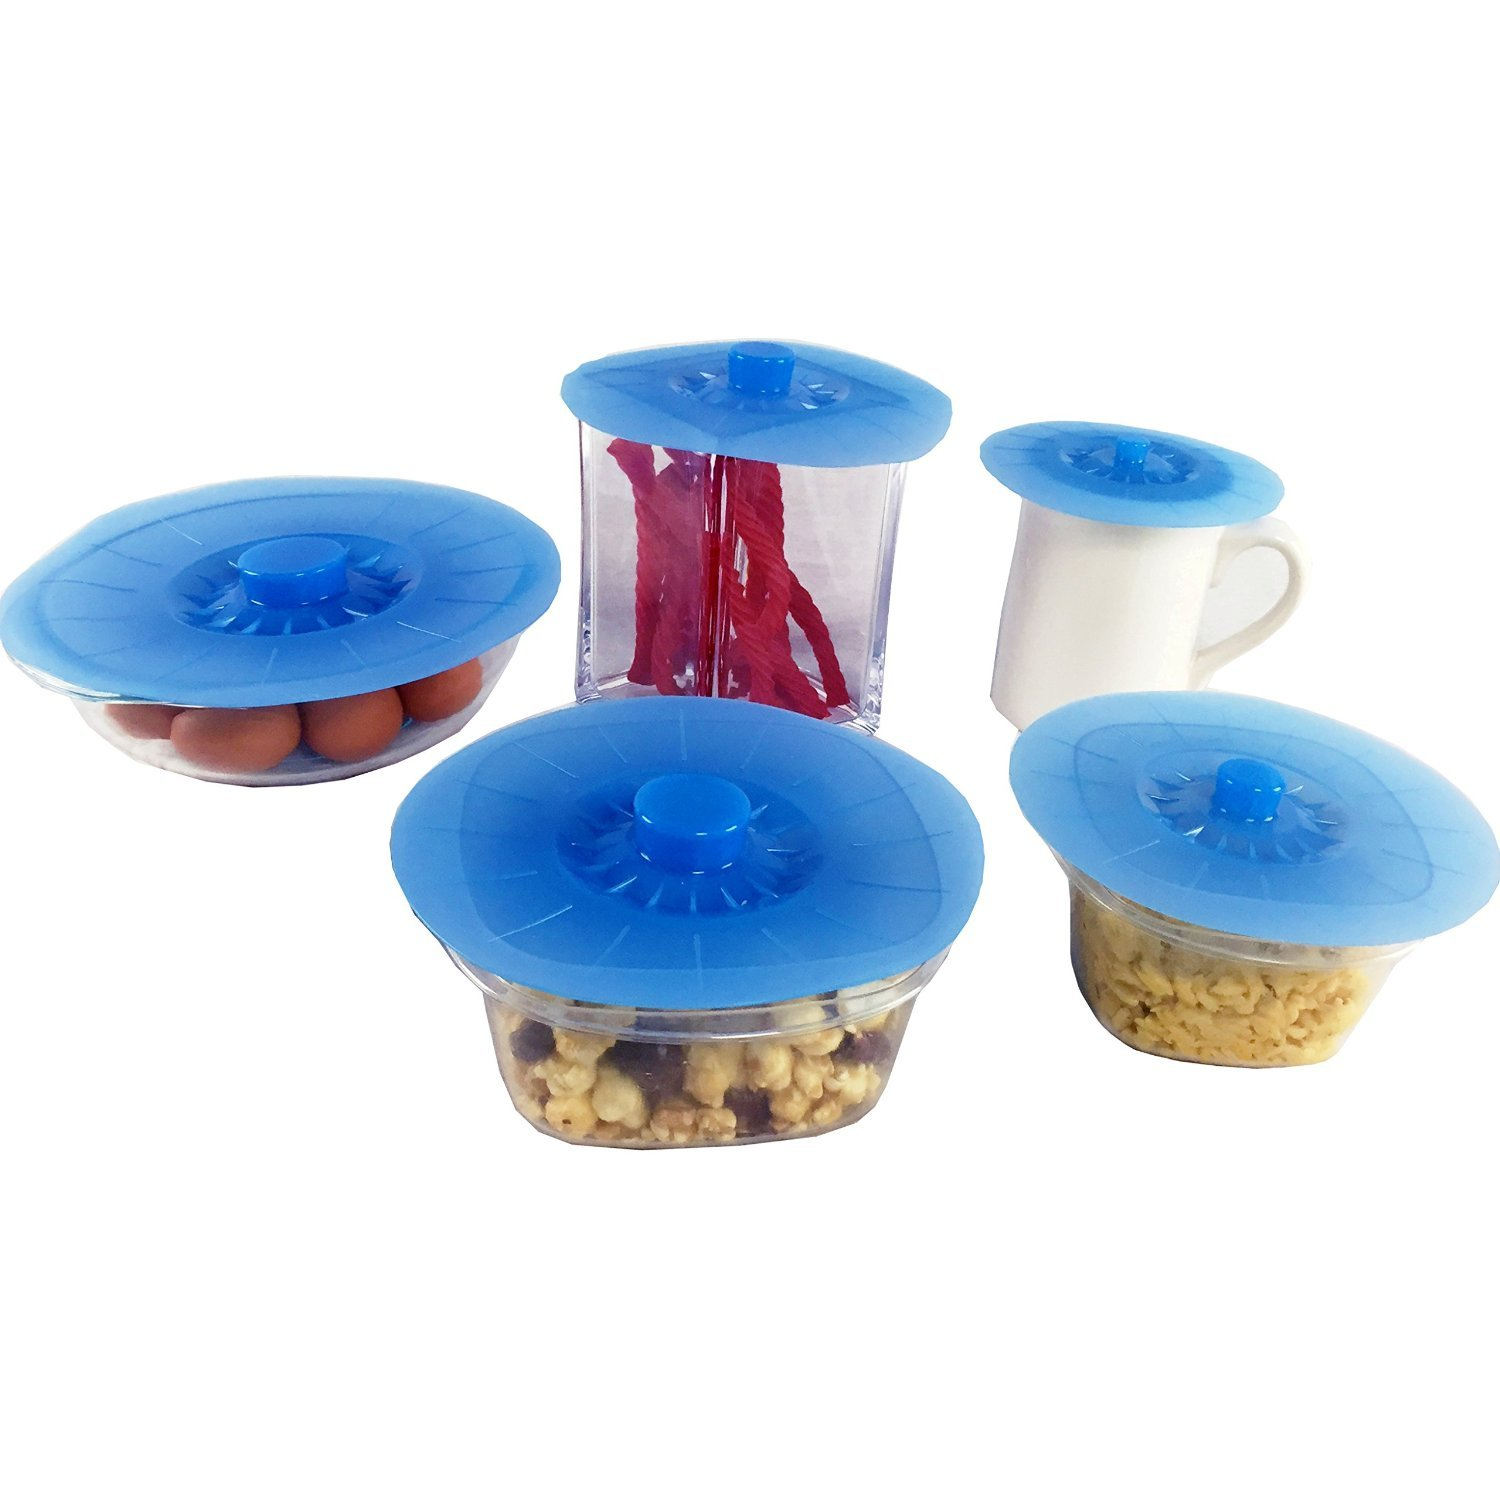 Dr. Joe Silicone Silicon Lids Covers Perfect Suction Seal for Kitchen Home Utensils 5-Piece Set